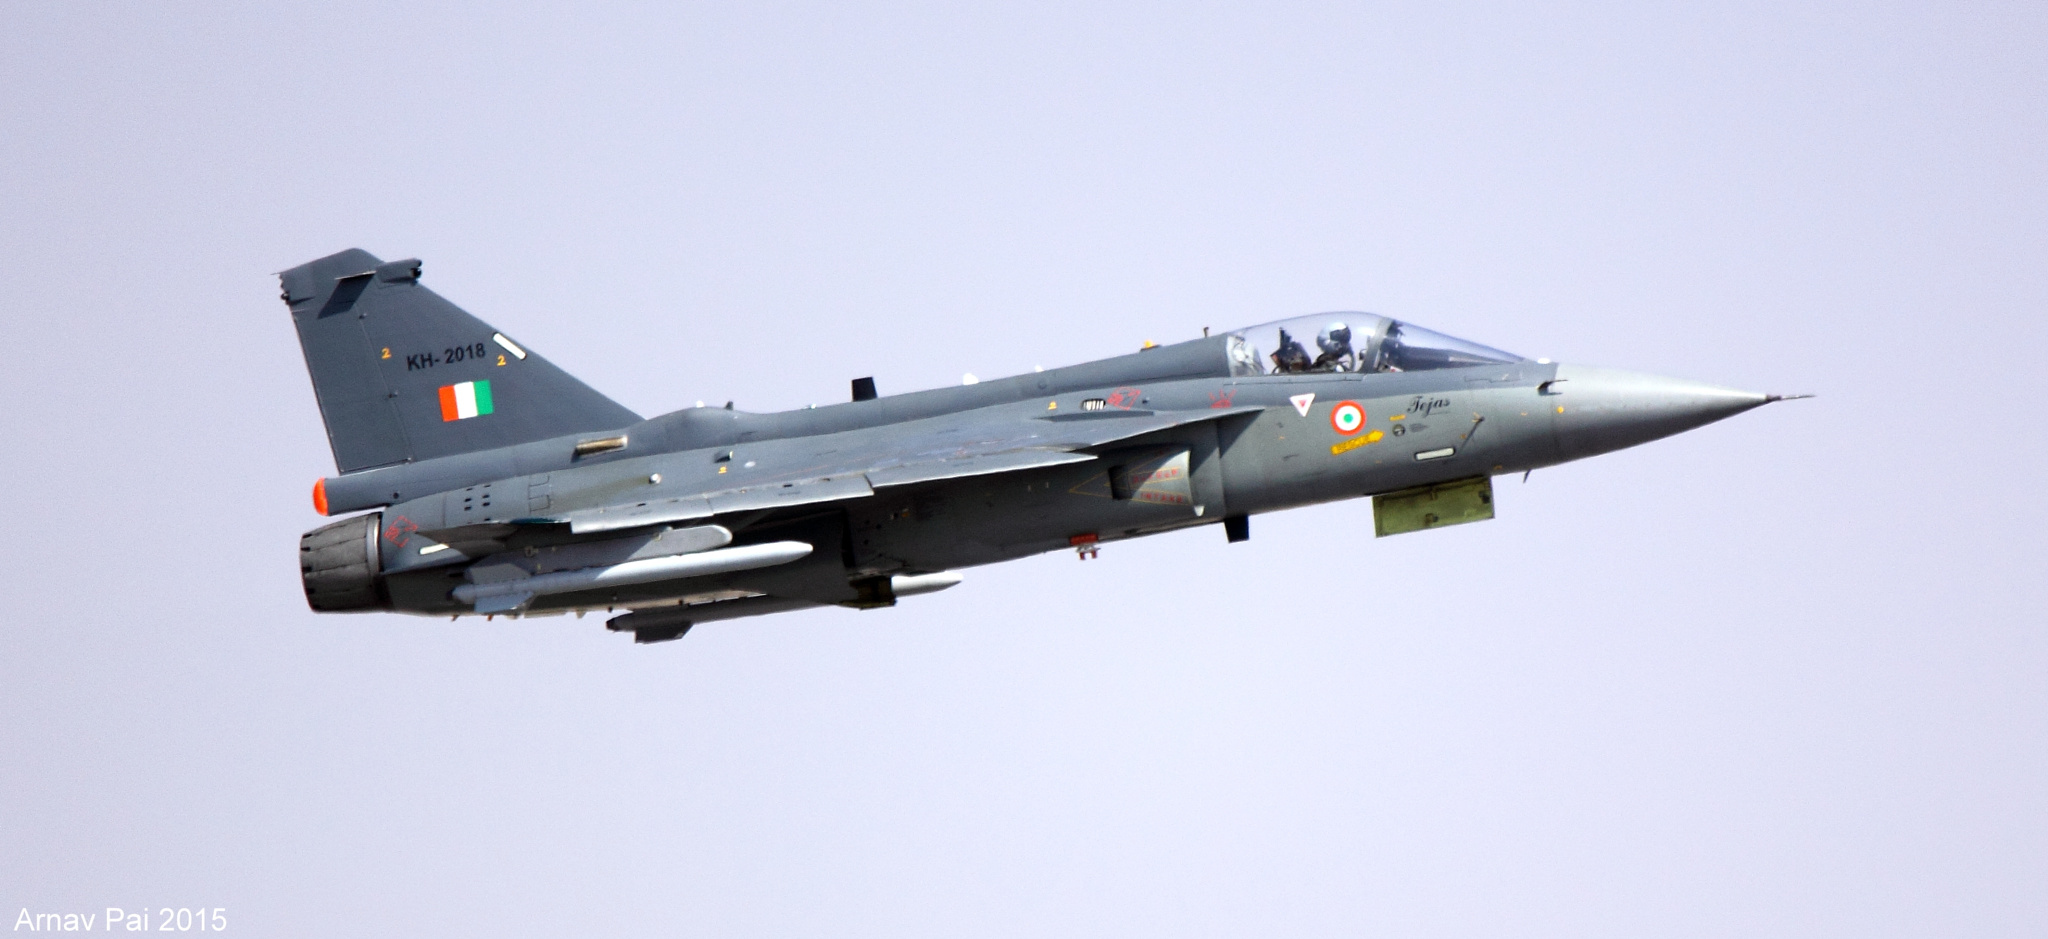 'Tejas' Light Combat Aircraft May End Up As Indian Aerospace Morale Booster